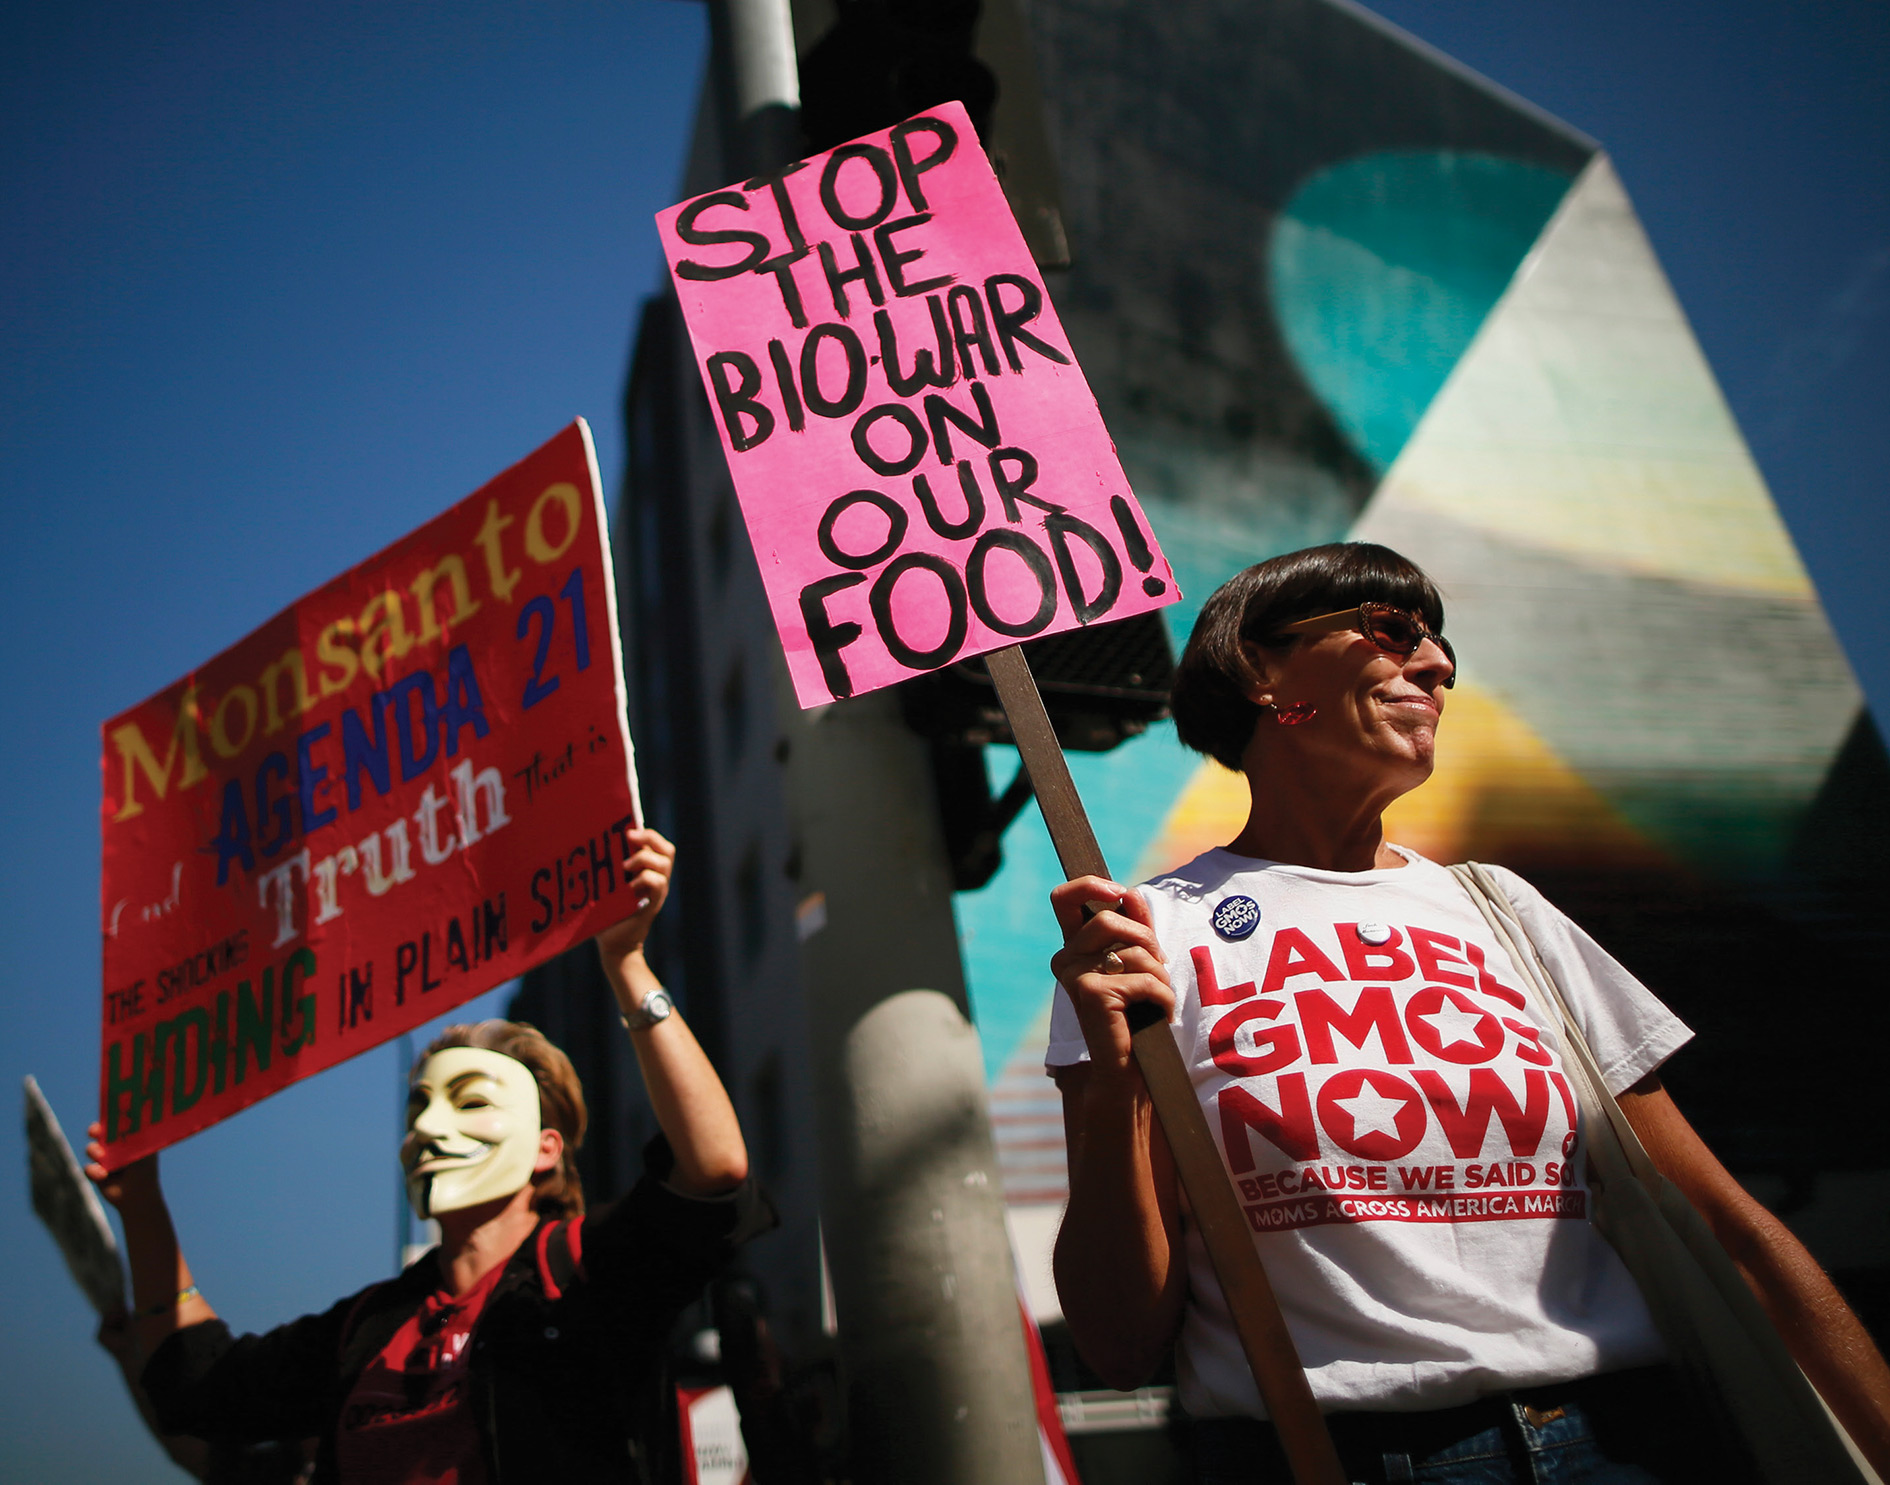 On 23 May protesters worldwide will be taking to the streets to 'March Against Monsanto!' They accuse the biotech giant of both poisoning and controlling the food supply.